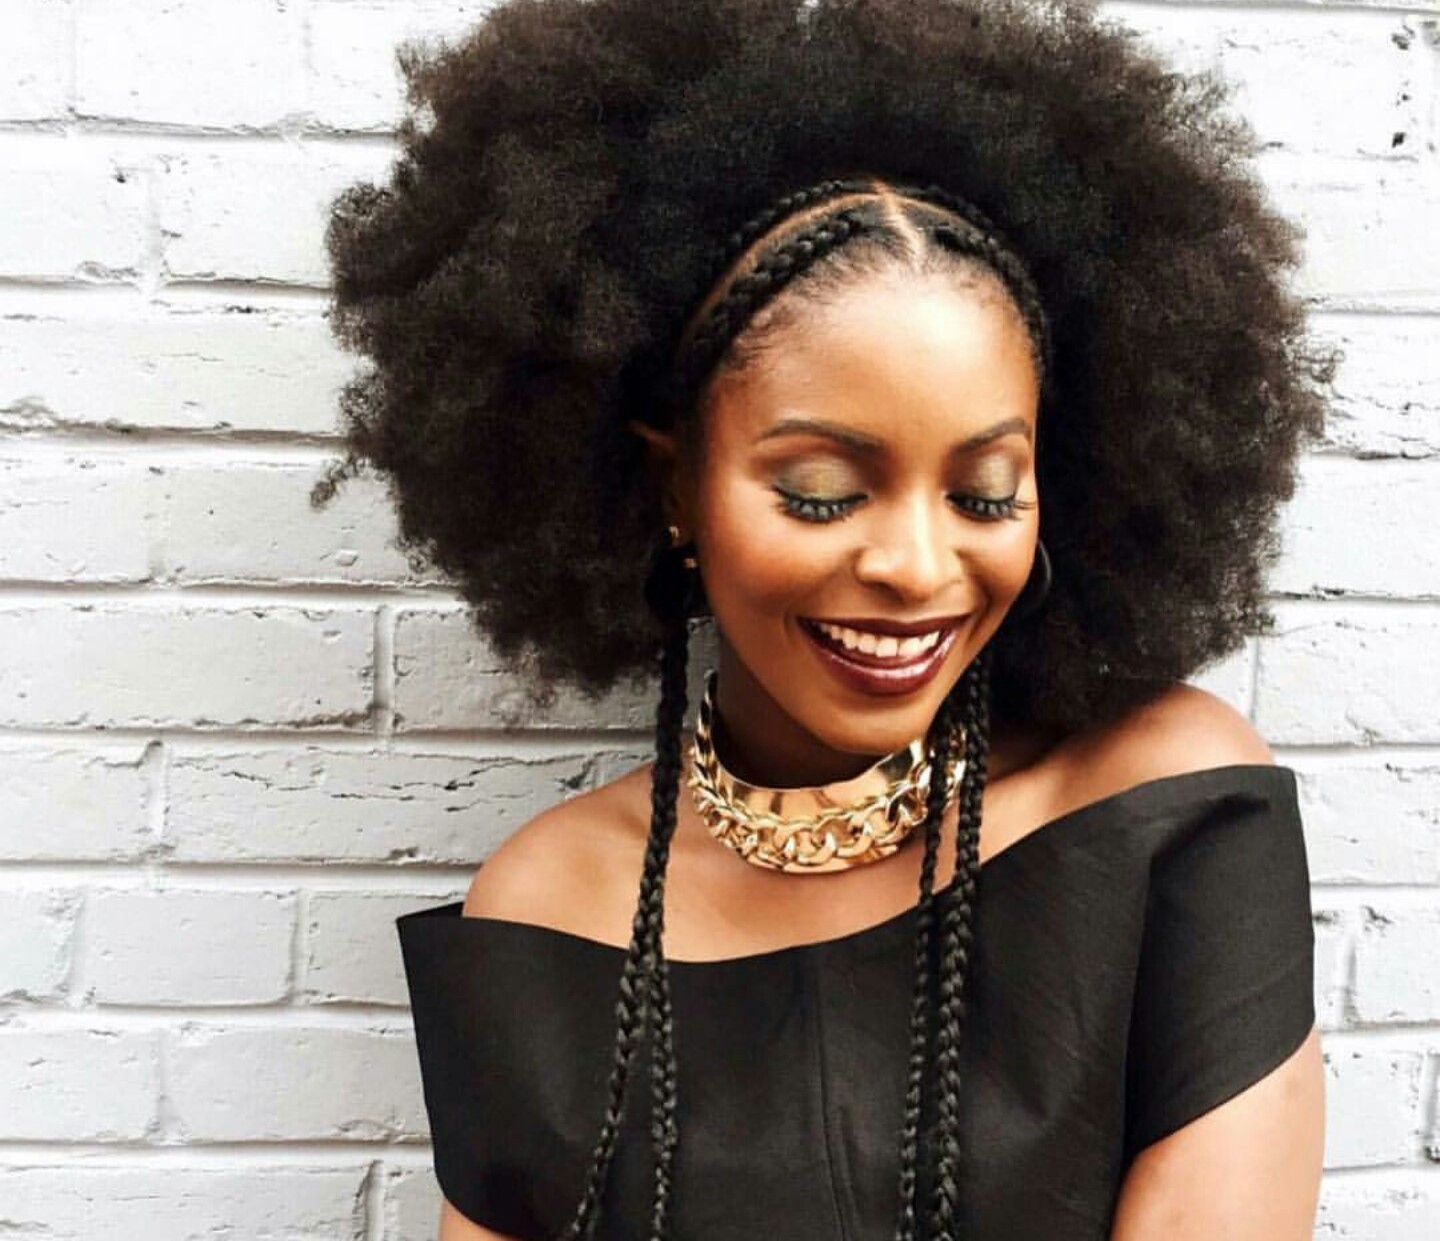 Naturalhair Cornrow Hairstyles Hair Inspiration Curly Hair Styles